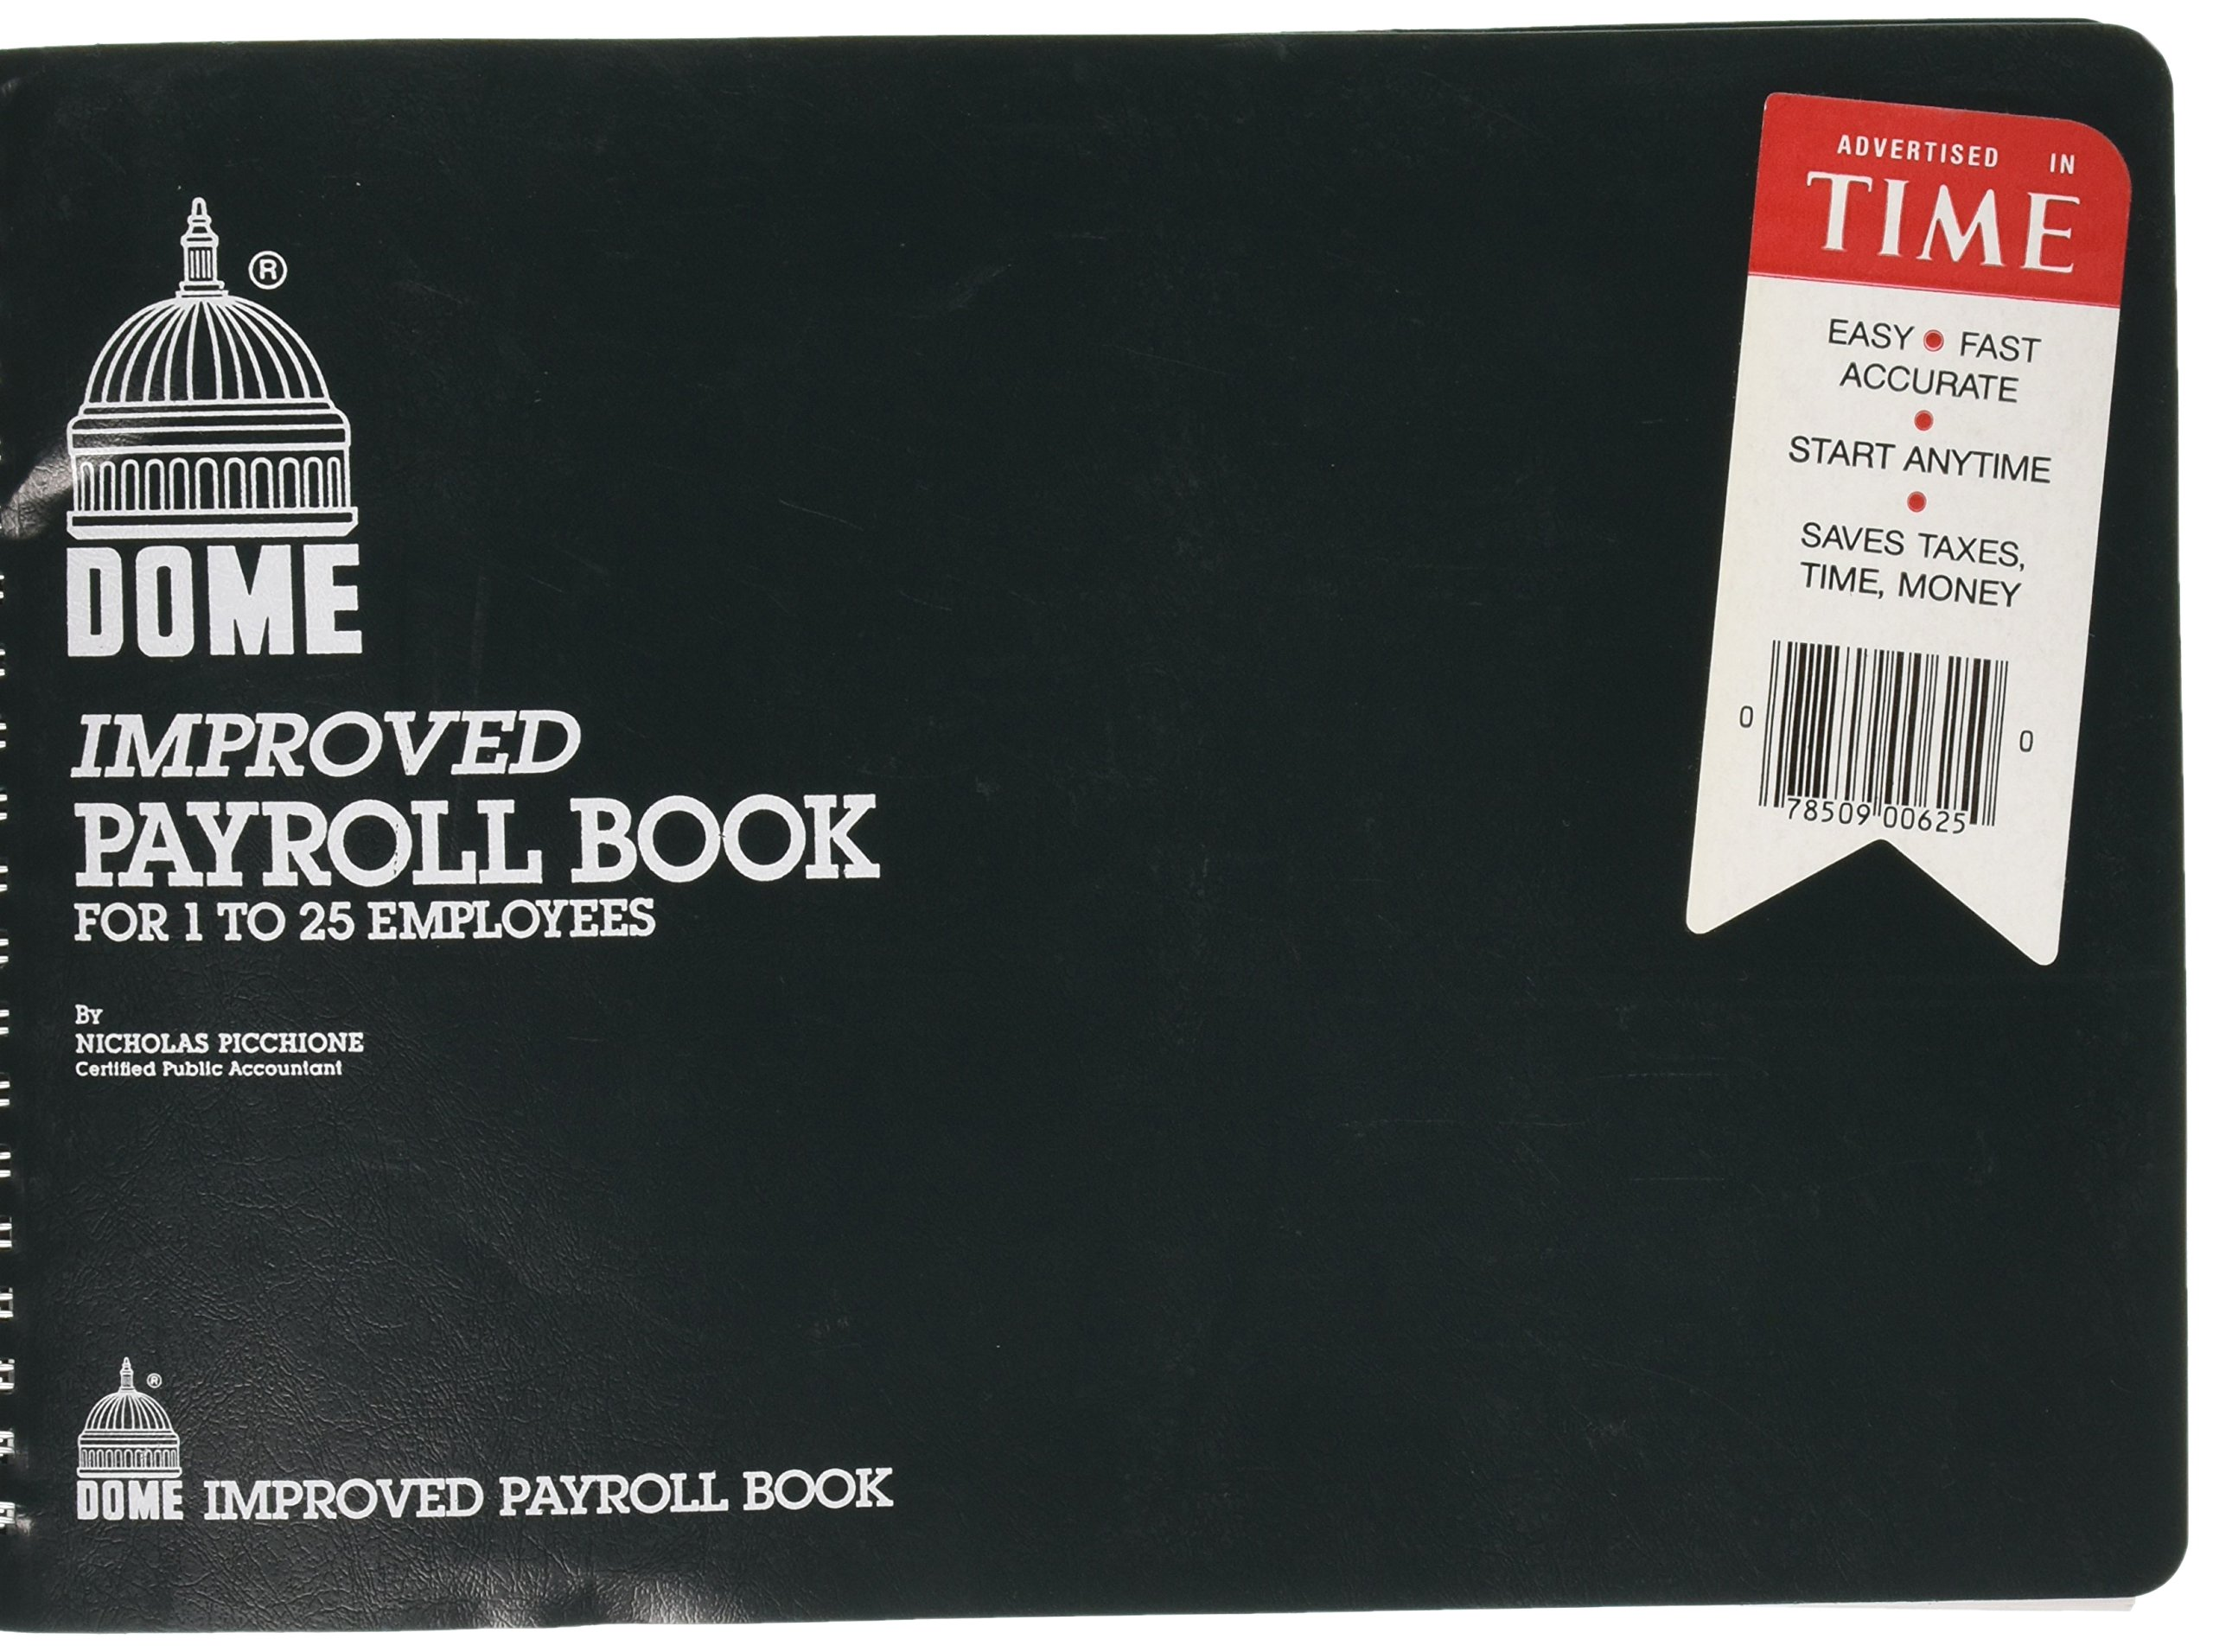 Dome Improved Payroll Book For 1 to 25 Emplyees 10''X6.5''